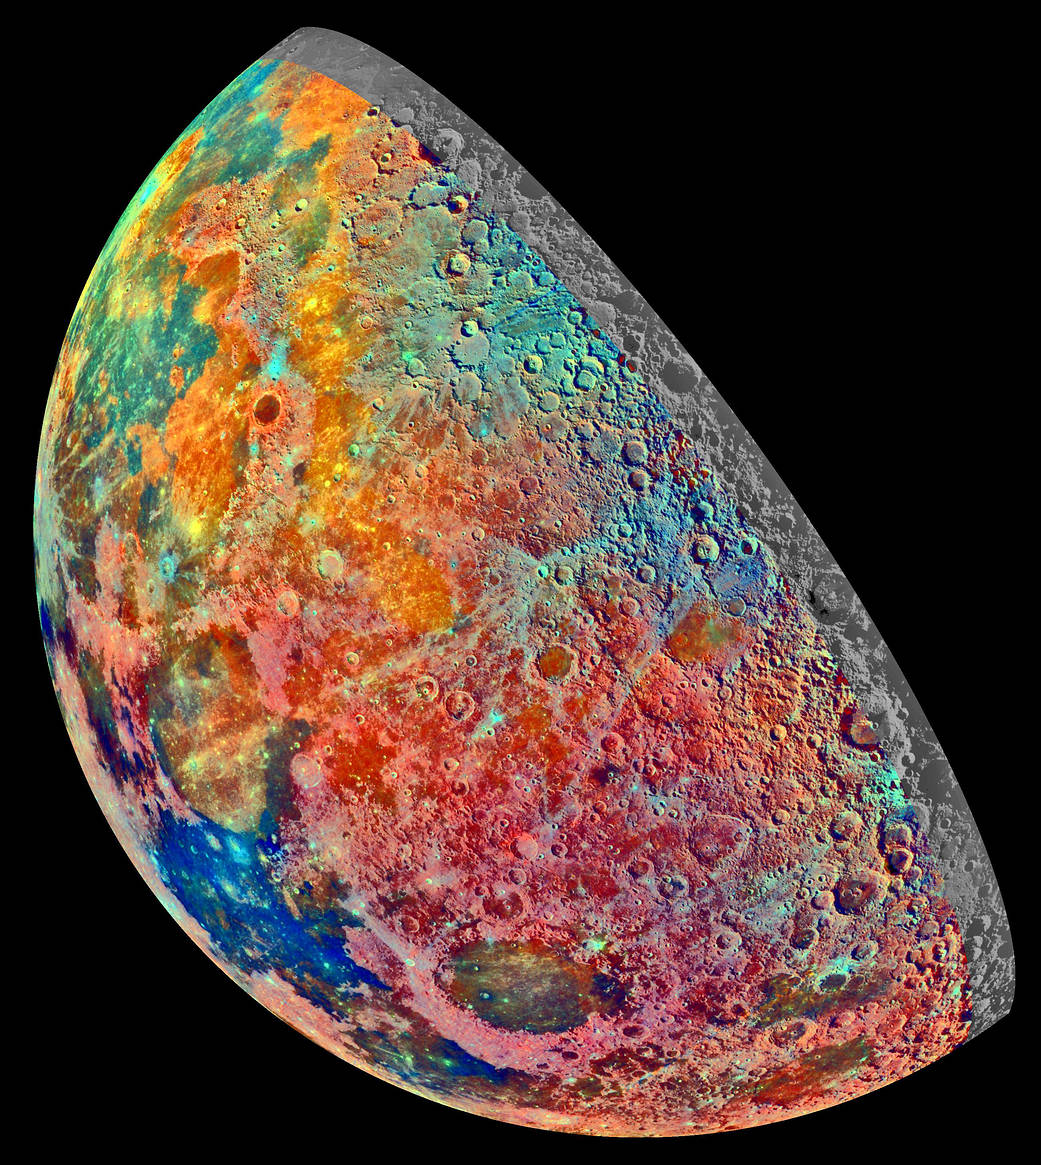 The Mineral Moon